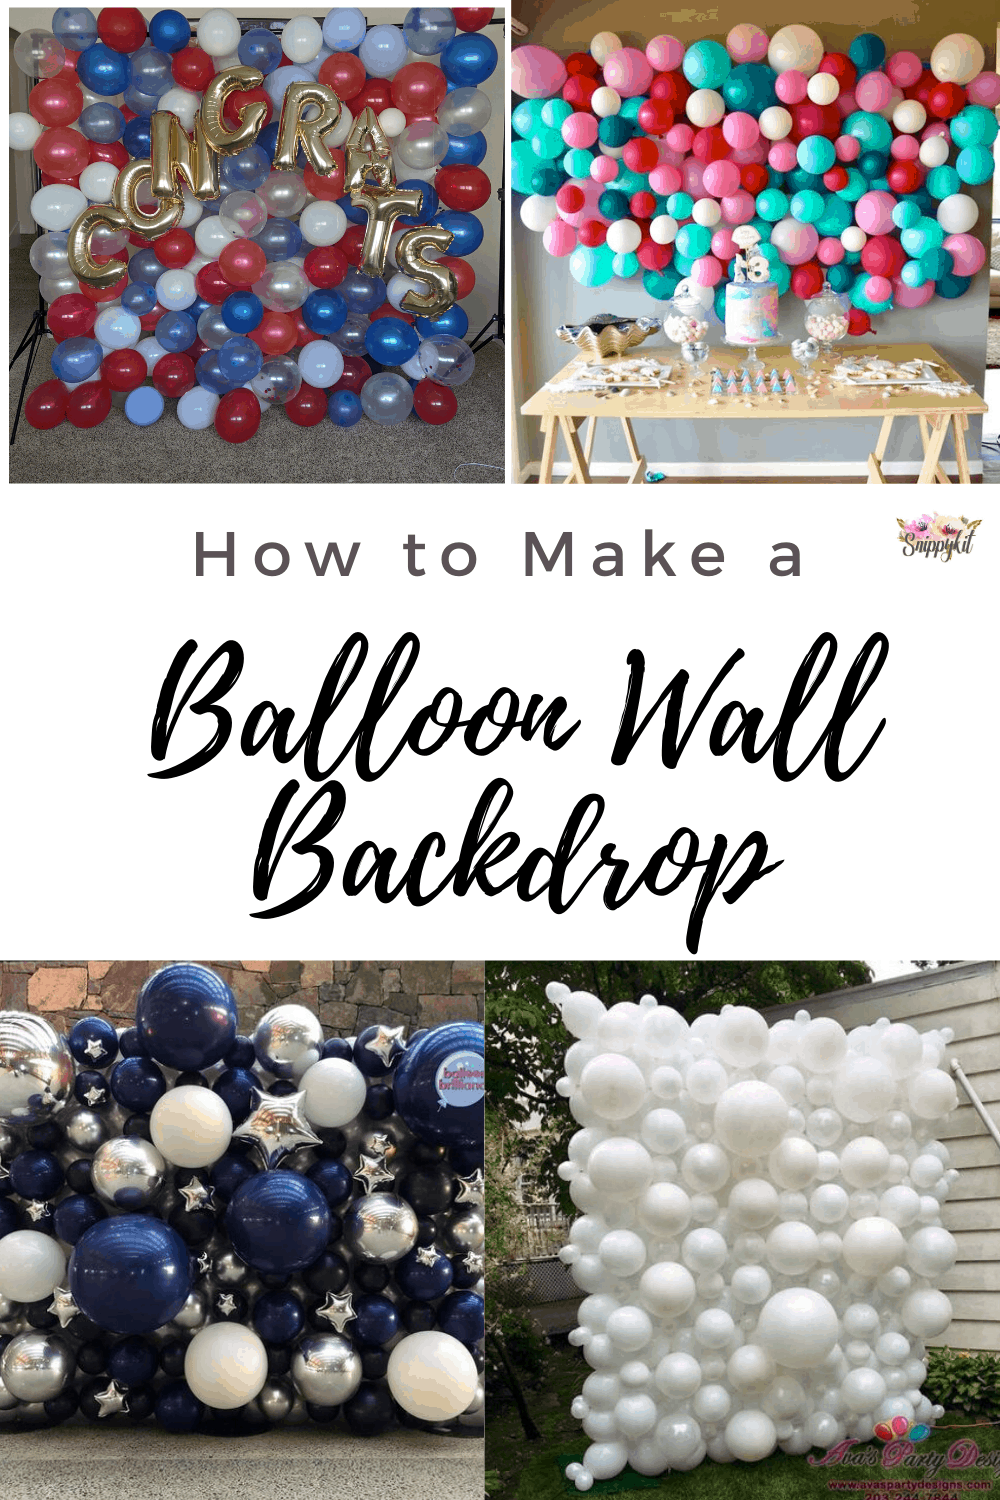 Need a good party of photo backdrop wall? This quick easy DIY balloon wall makes for a great easy option. Check out my tutorial and try it for yourself!